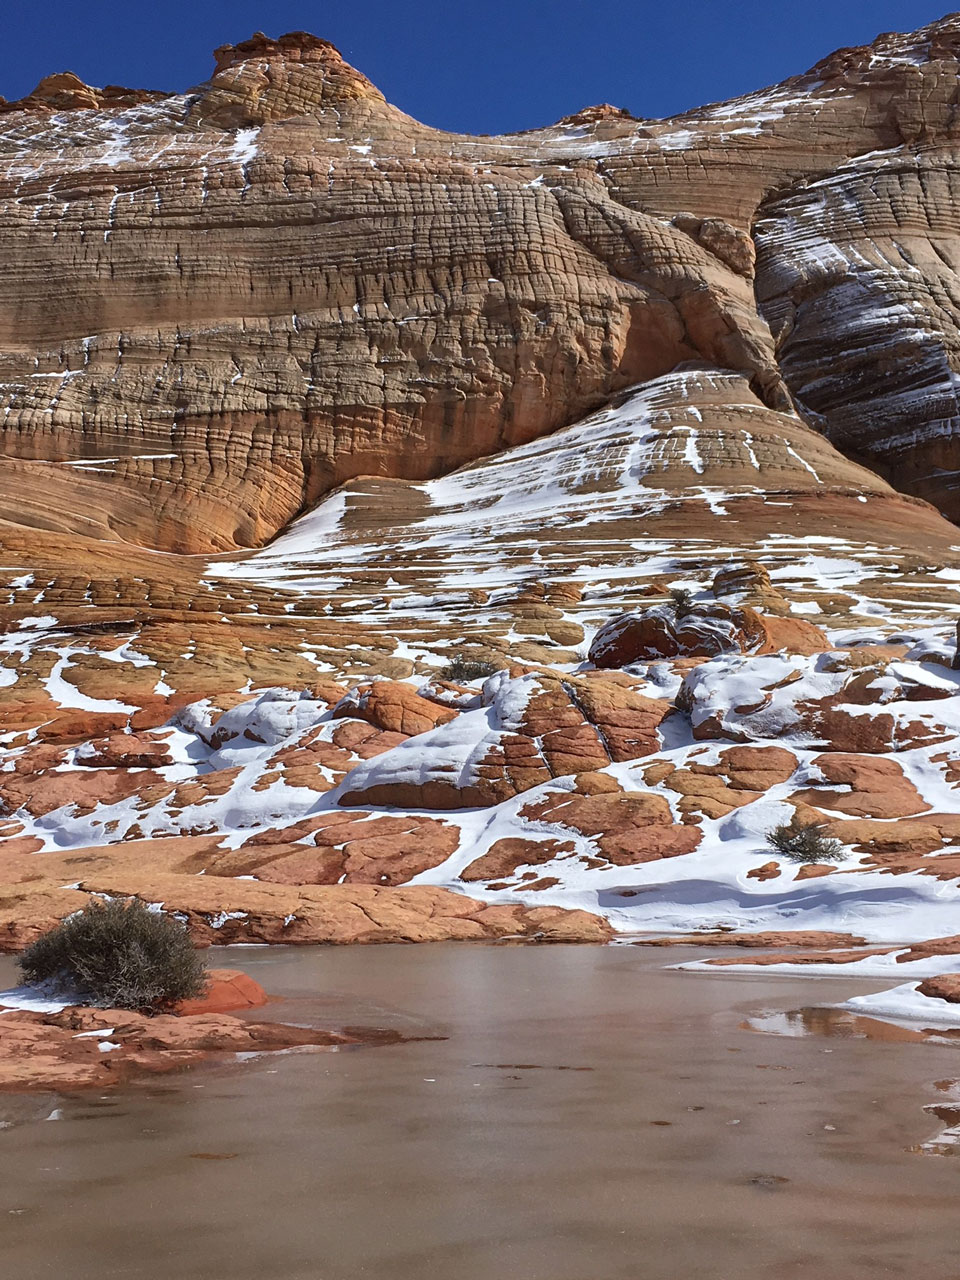 What kind of weather can I expect during my trip to Kanab, Utah?